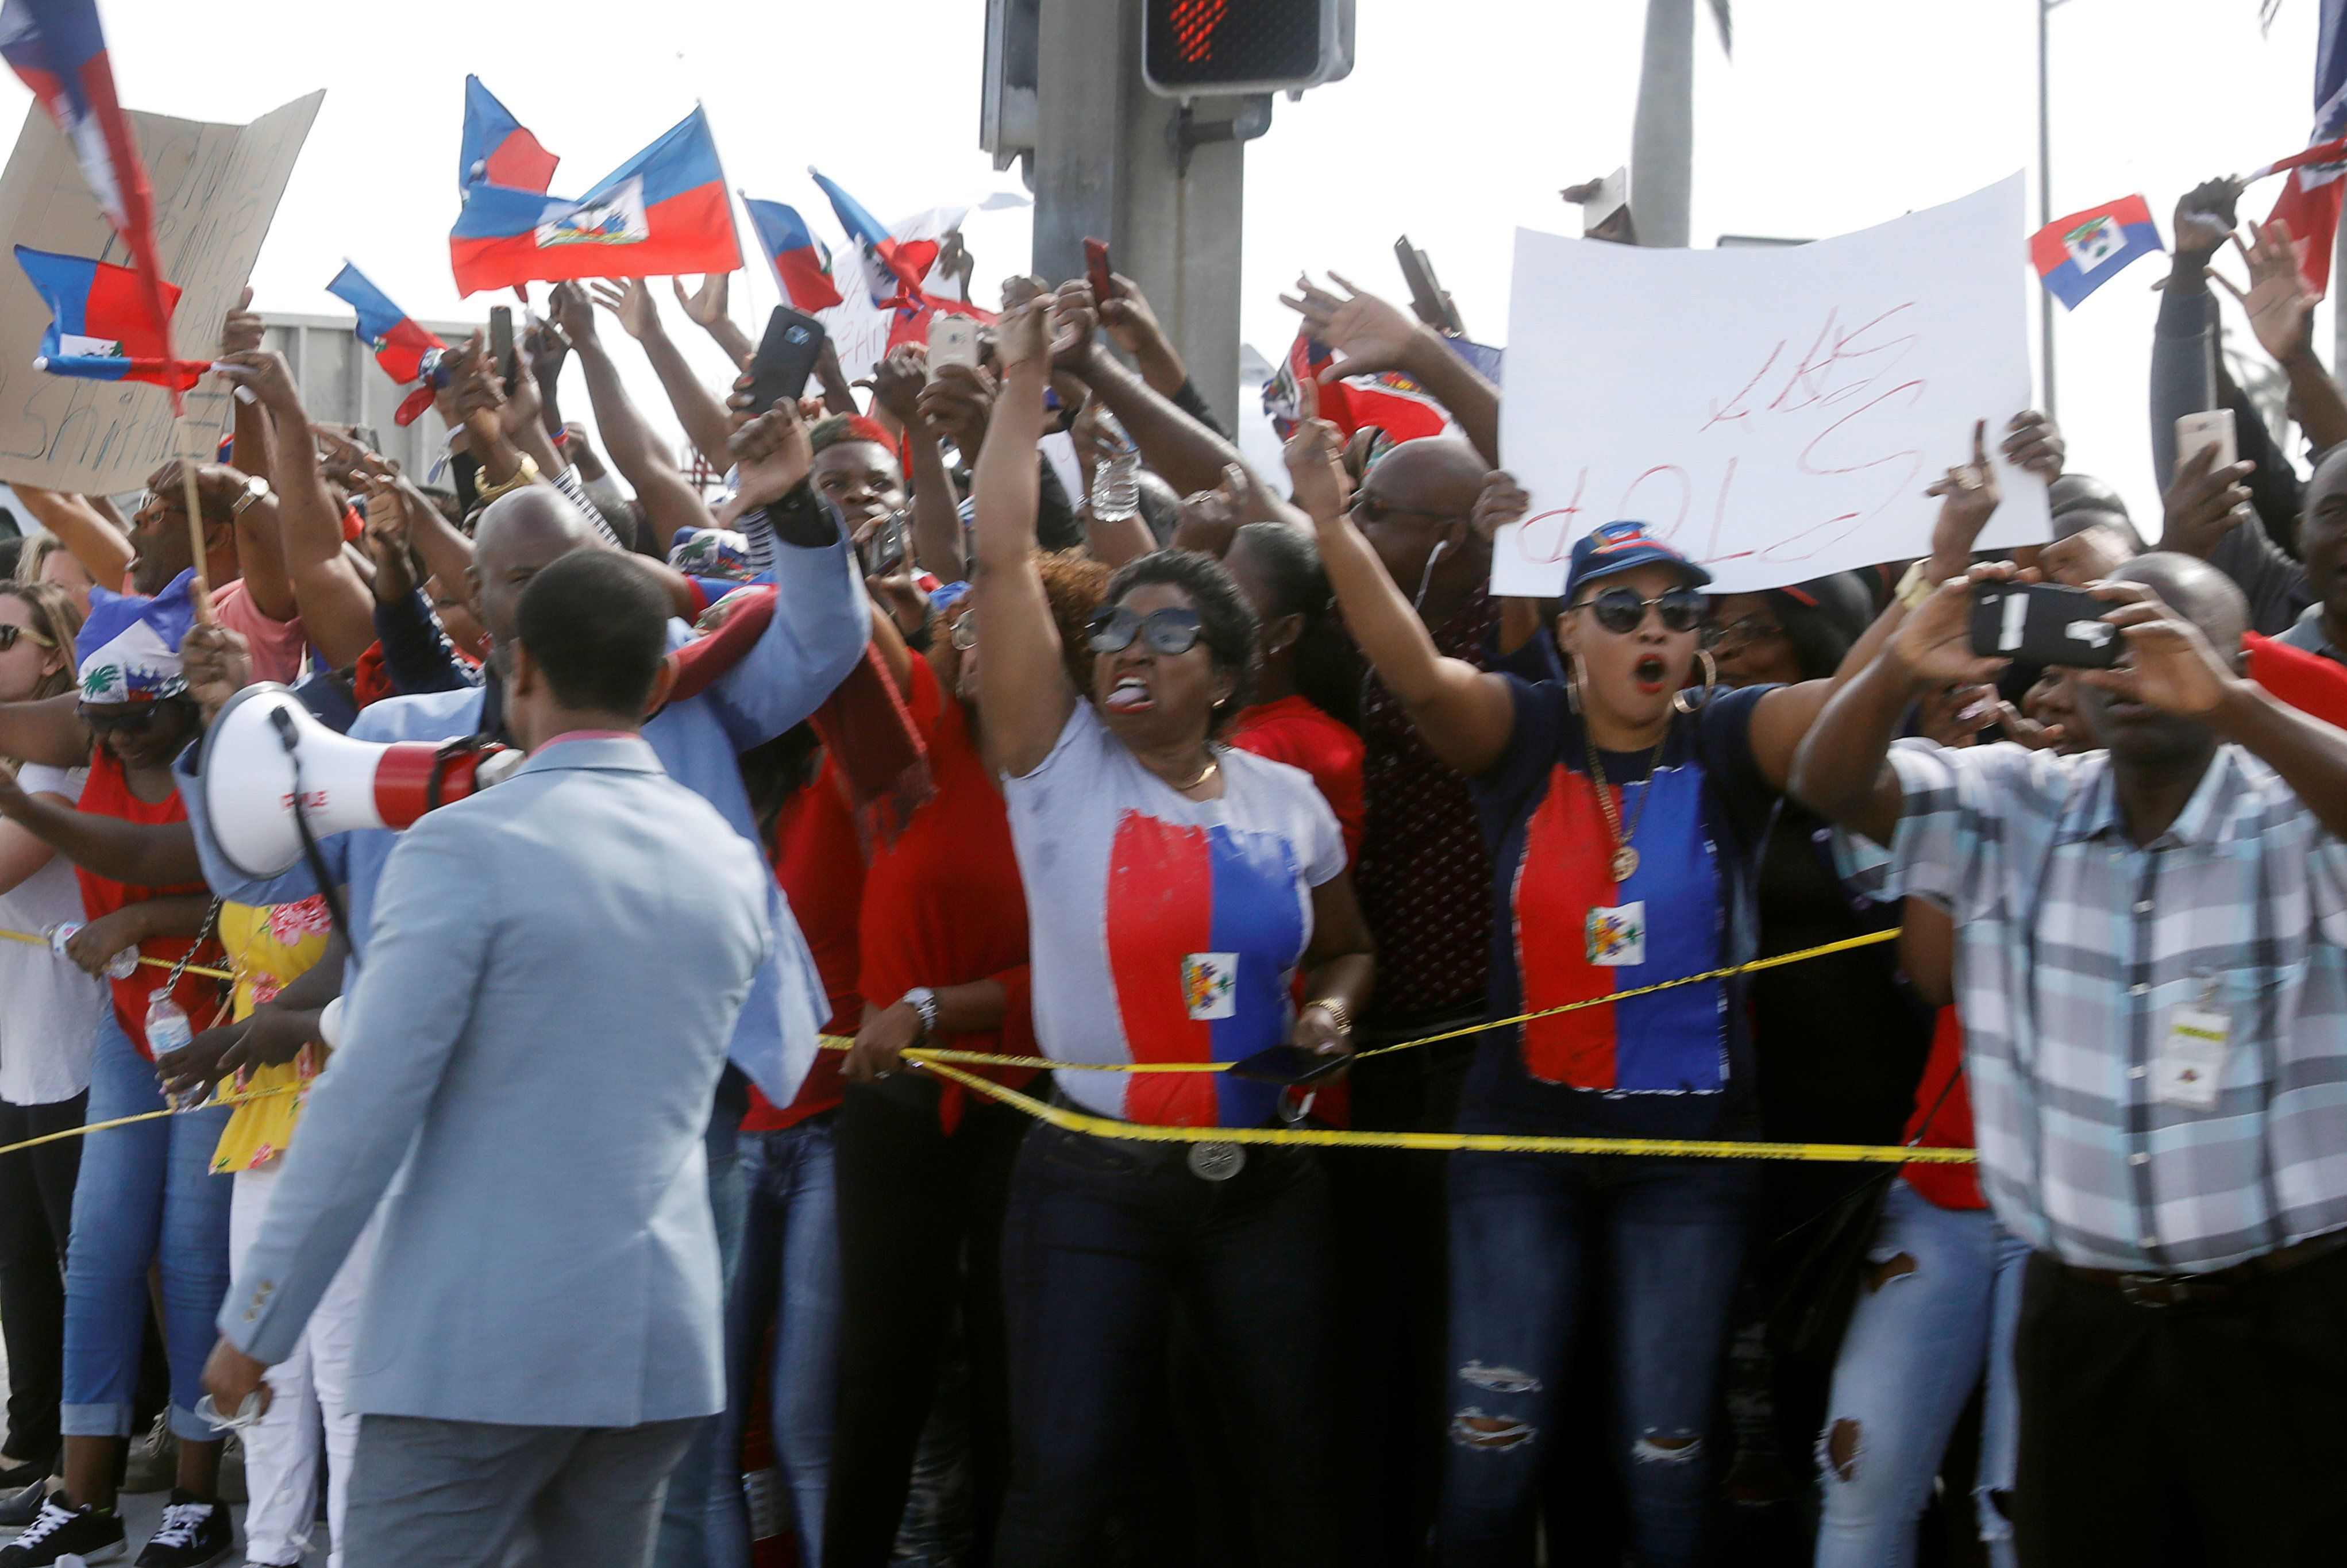 Demonstrators hold up Haitian flags and shout as President Donald Trump's motorcade passes in West Palm Beach, Florida,